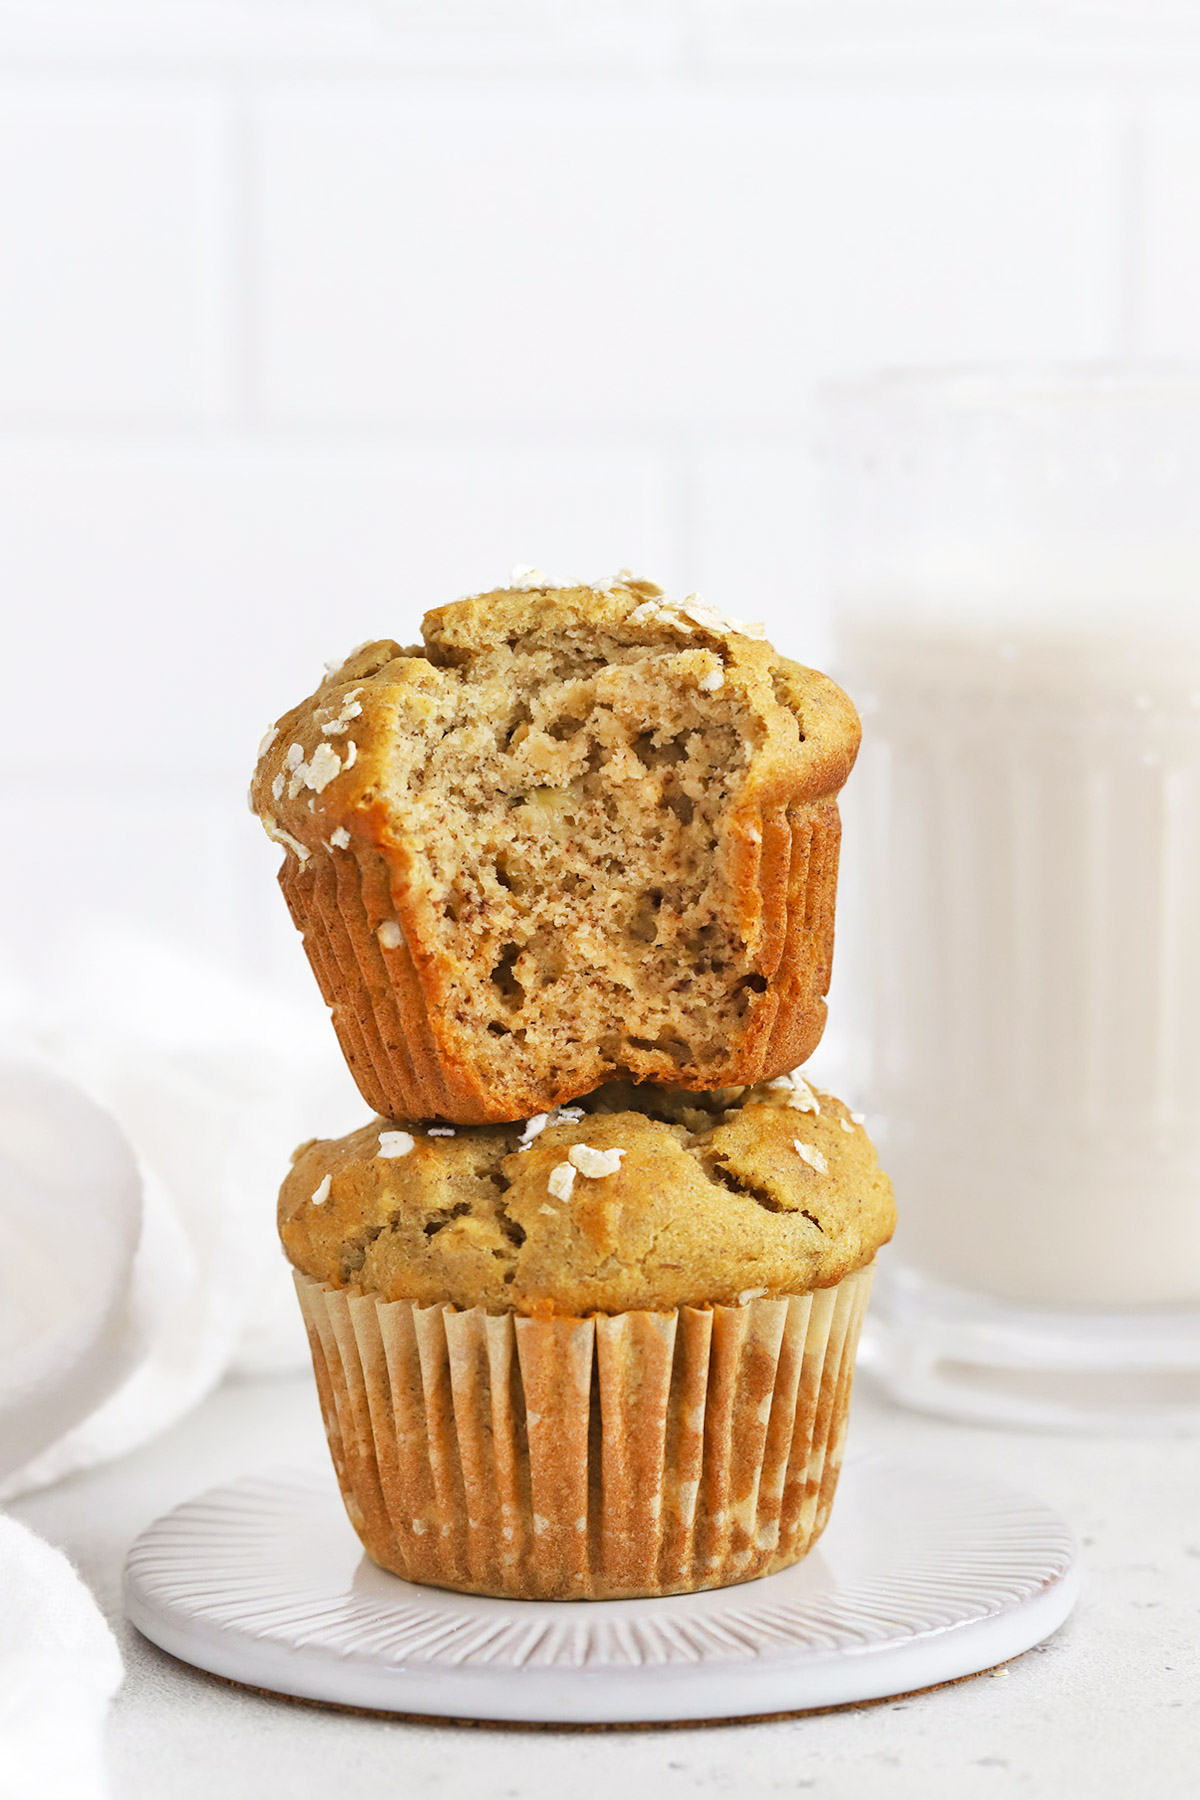 Front view of two gluten-free banana oatmeal muffins stacked on top of each other. The top muffin has a bite taken out of it.